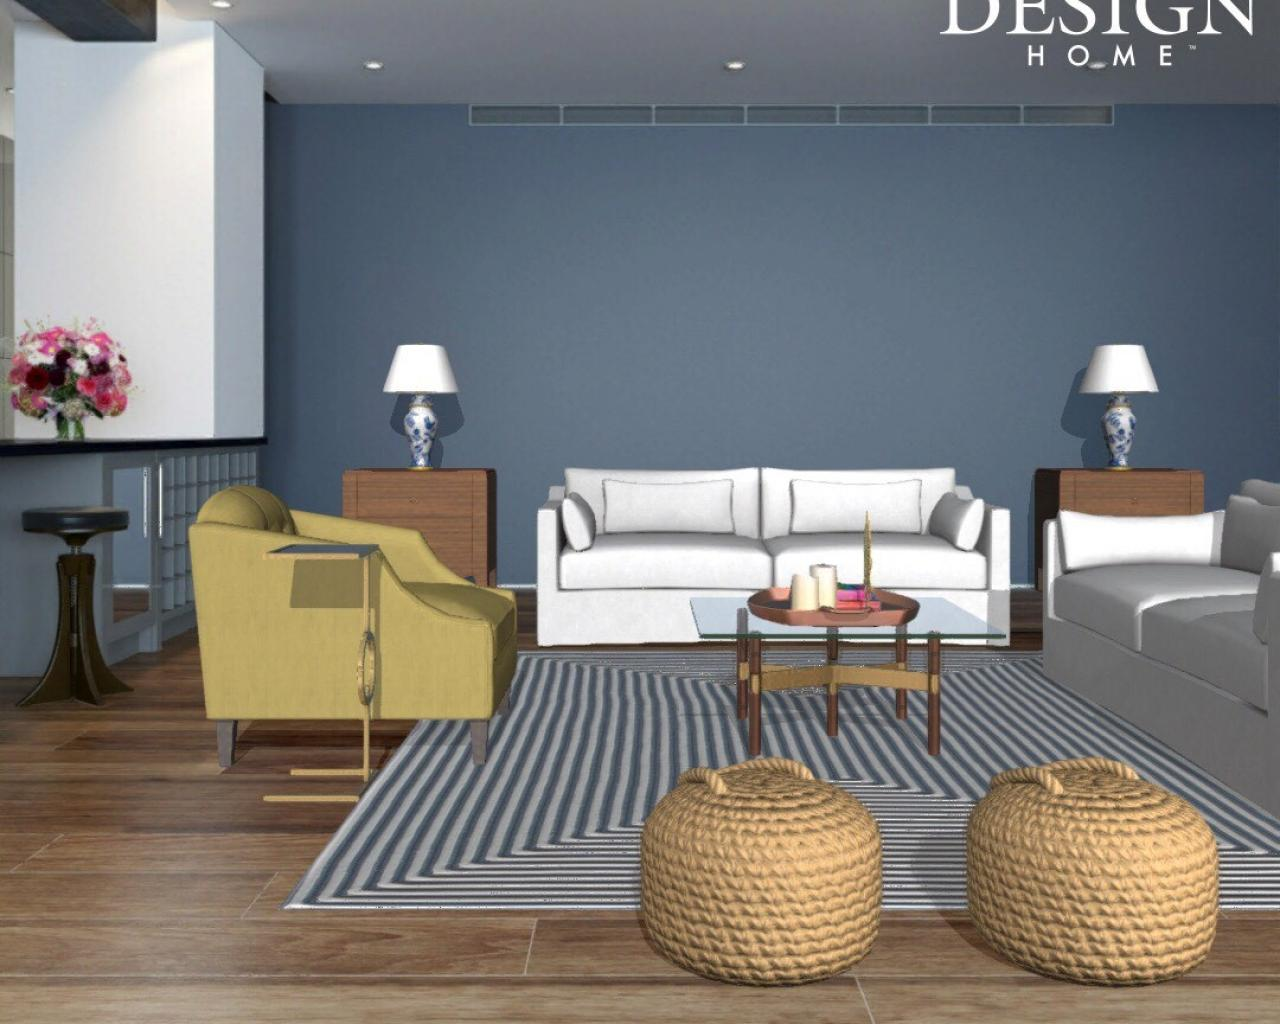 Ryan I Ve Always Enjoyed Designing Rooms Virtually And Having That Ability On My Phone Is Fantastic The Design Home App Challenged Me To Work Within A